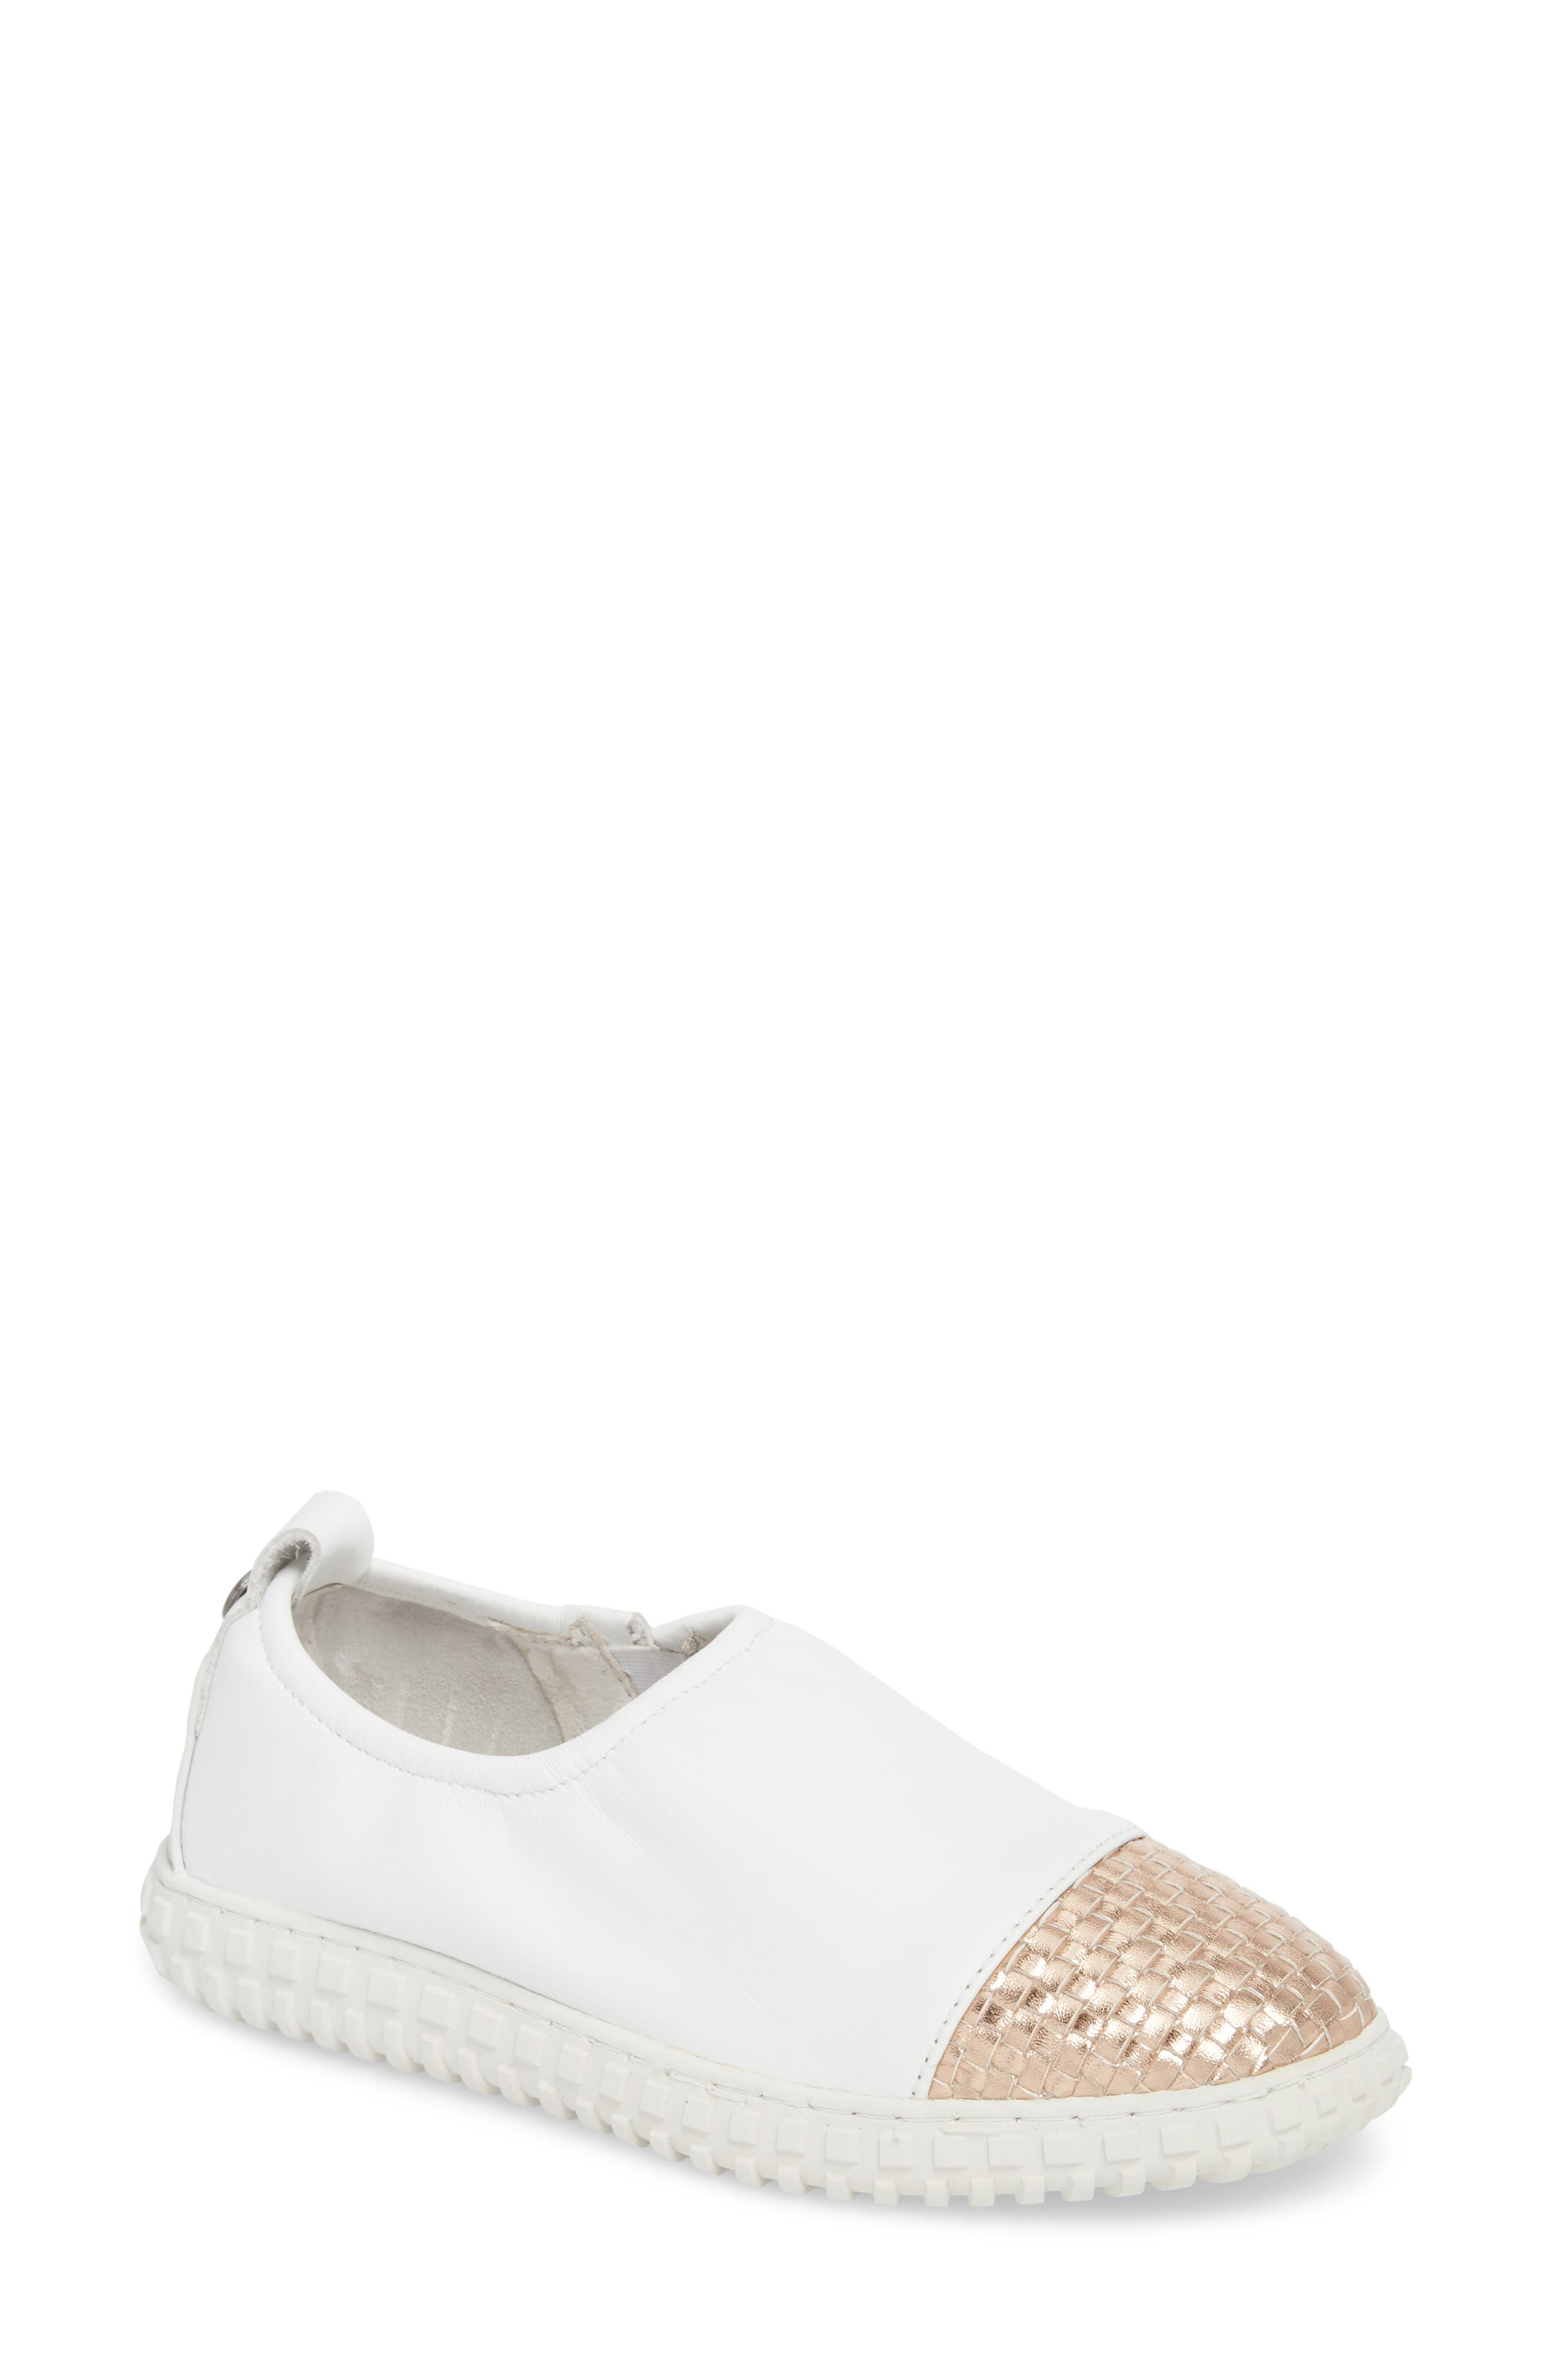 TW103 Slip-On Flat, Main, color, WHITE/ ROSE GOLD WOVEN LEATHER